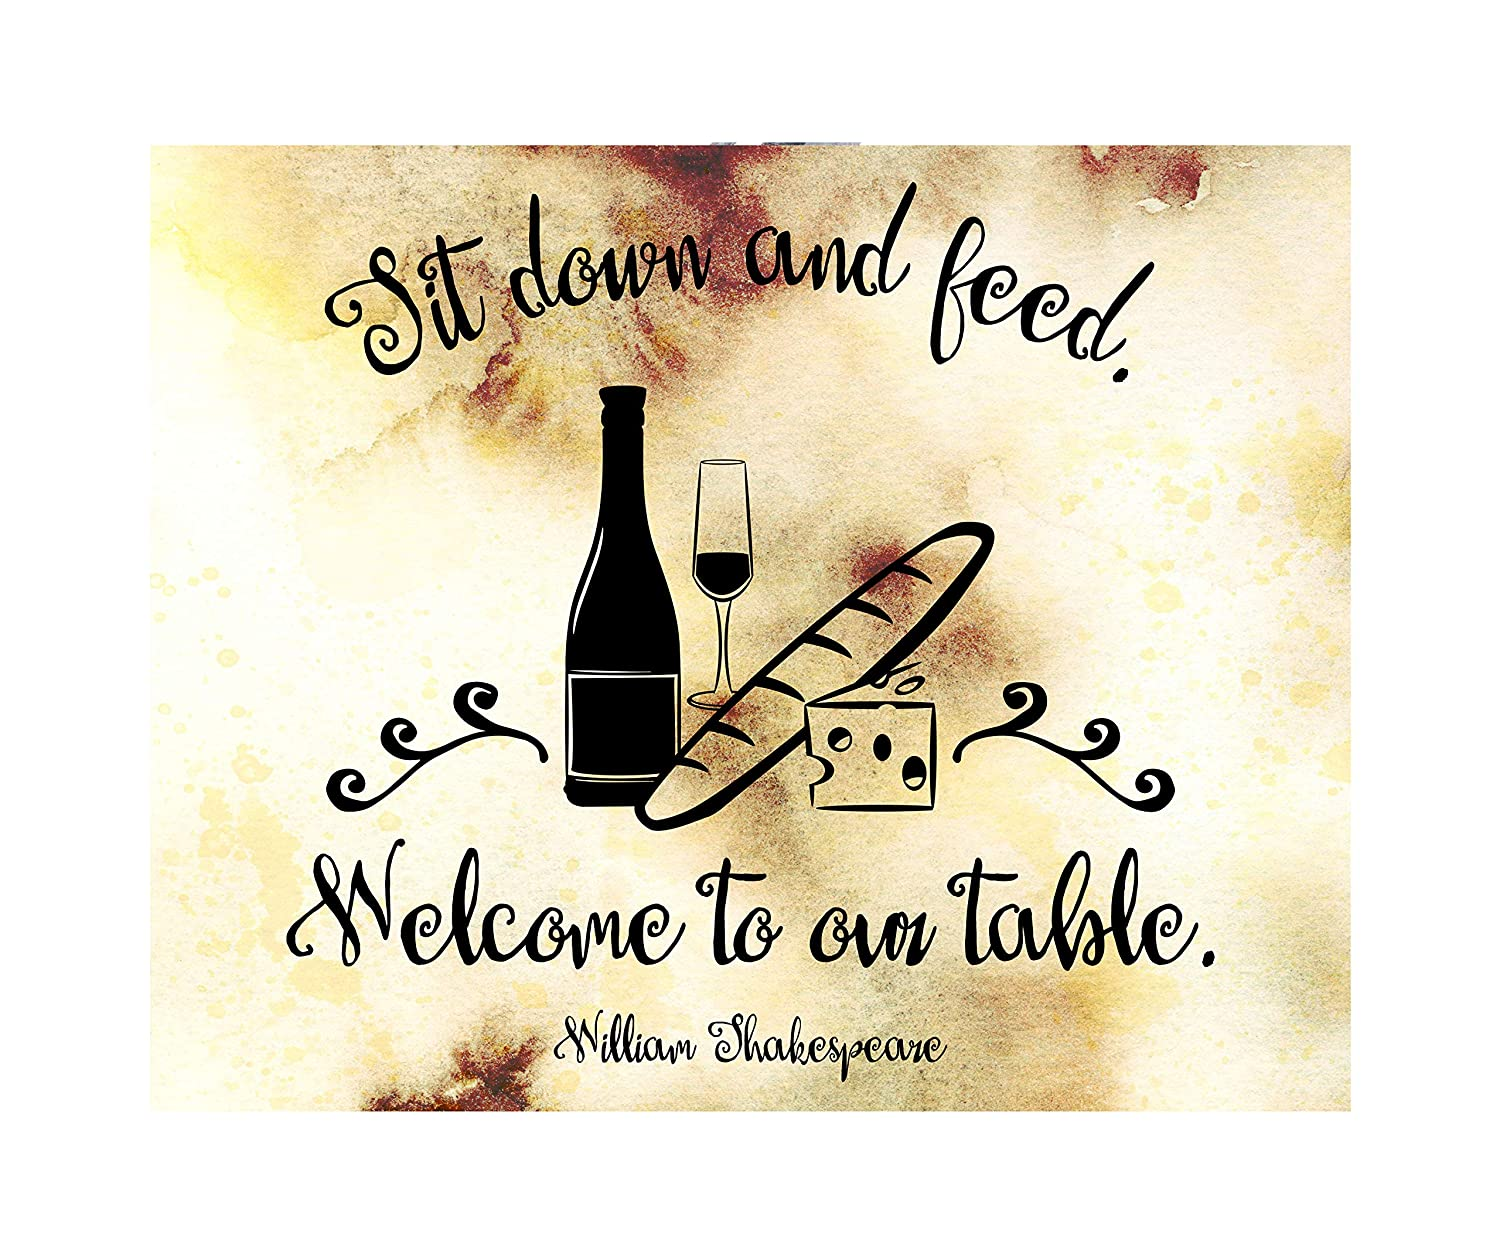 20x16 Welcome to Our Table Canvas Popular overseas Wall Art Print Very popular